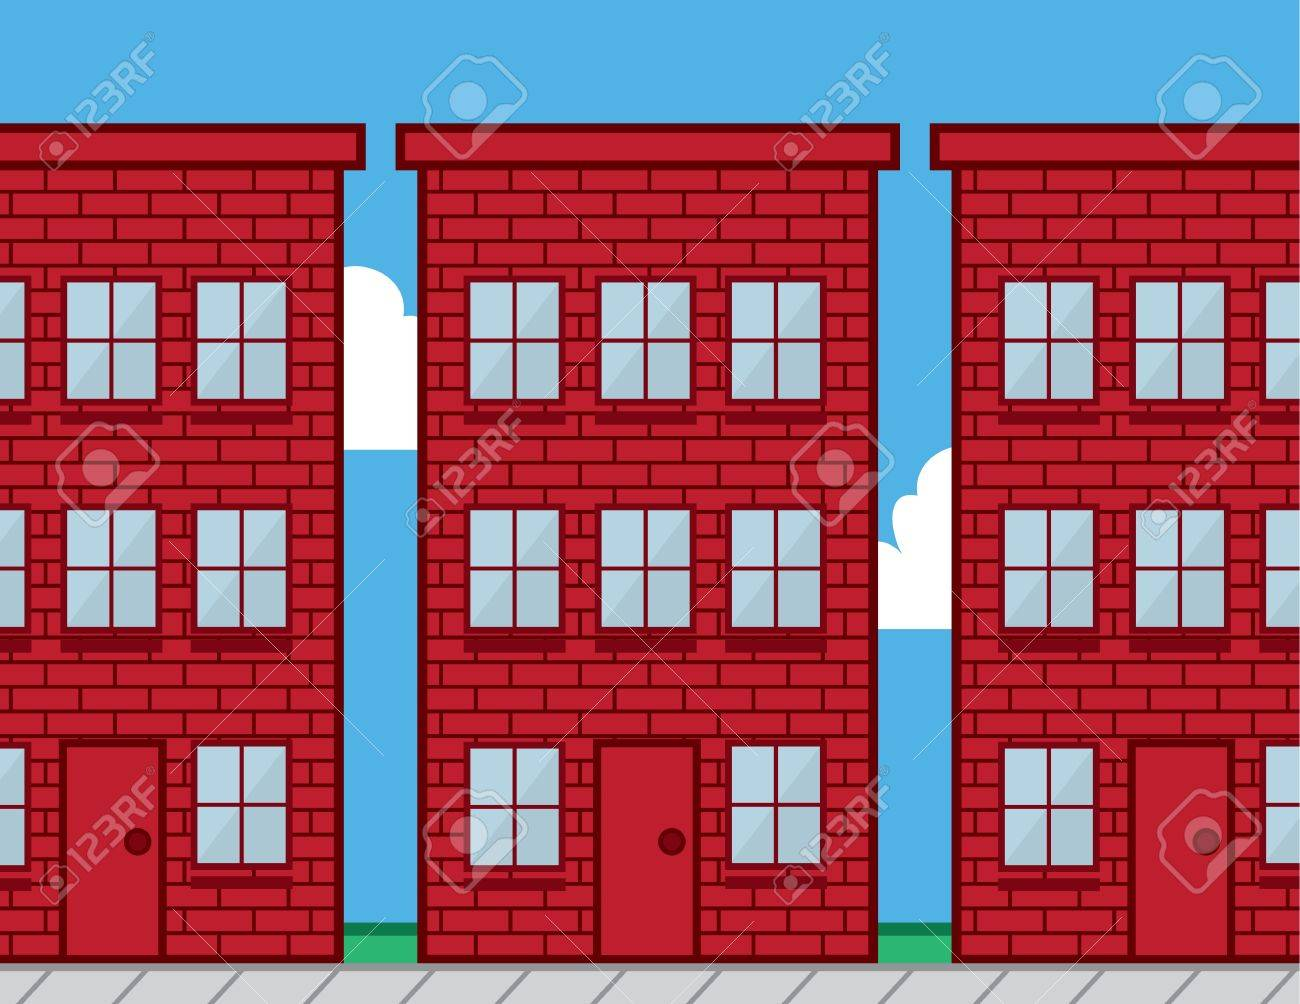 Red Brick Buildings With Sidewalk Stock Vector